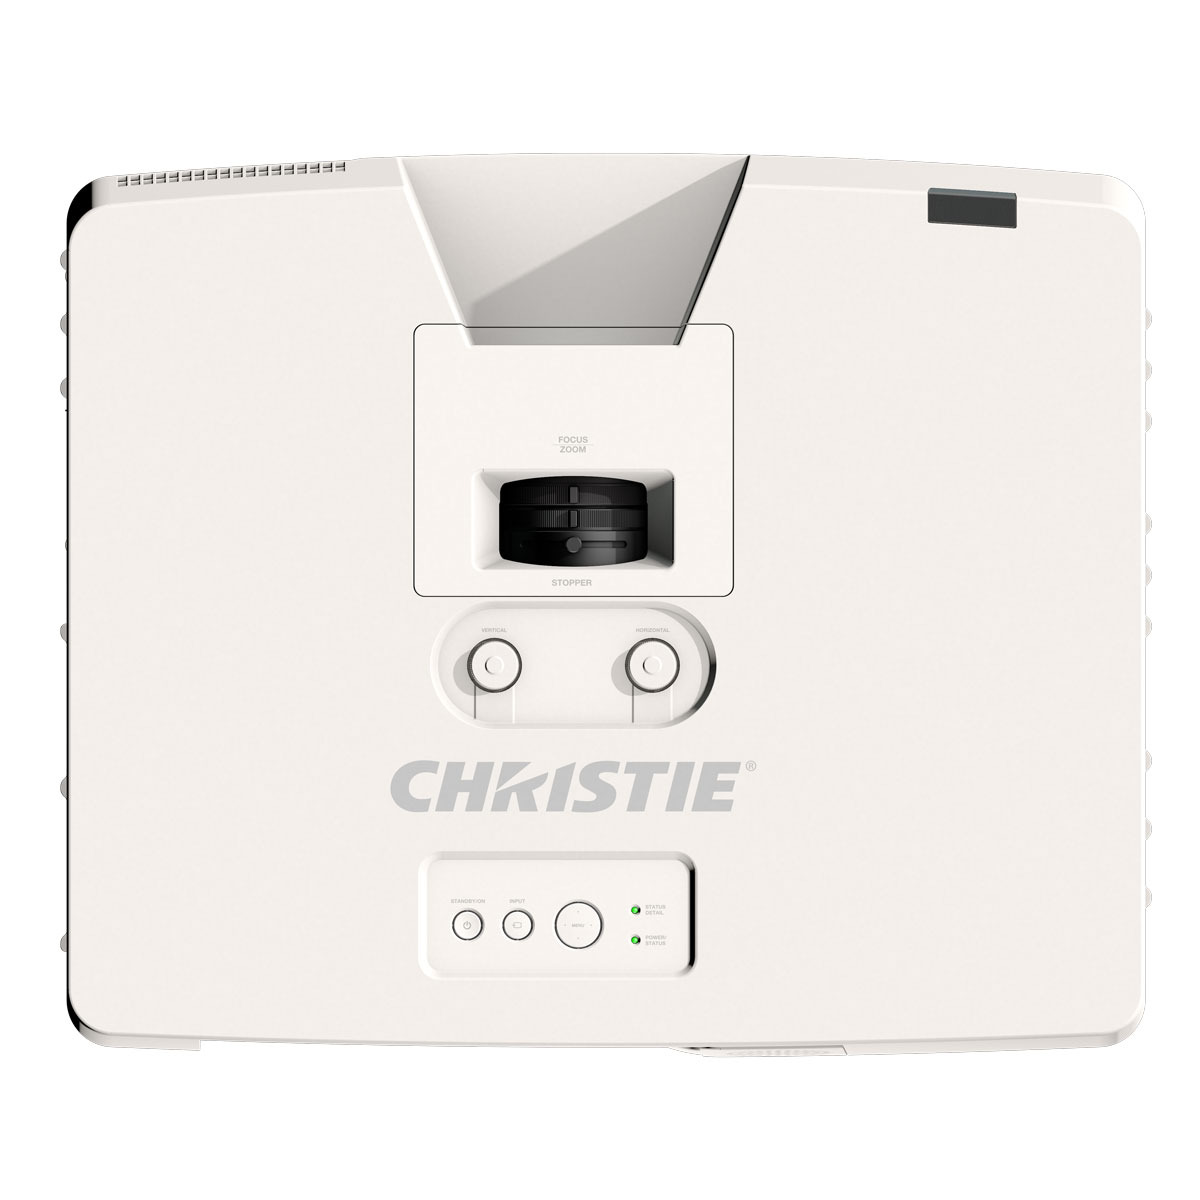 /globalassets/.catalog/products/images/christie-lwu530-aps/gallery/christie_aps_top.jpg